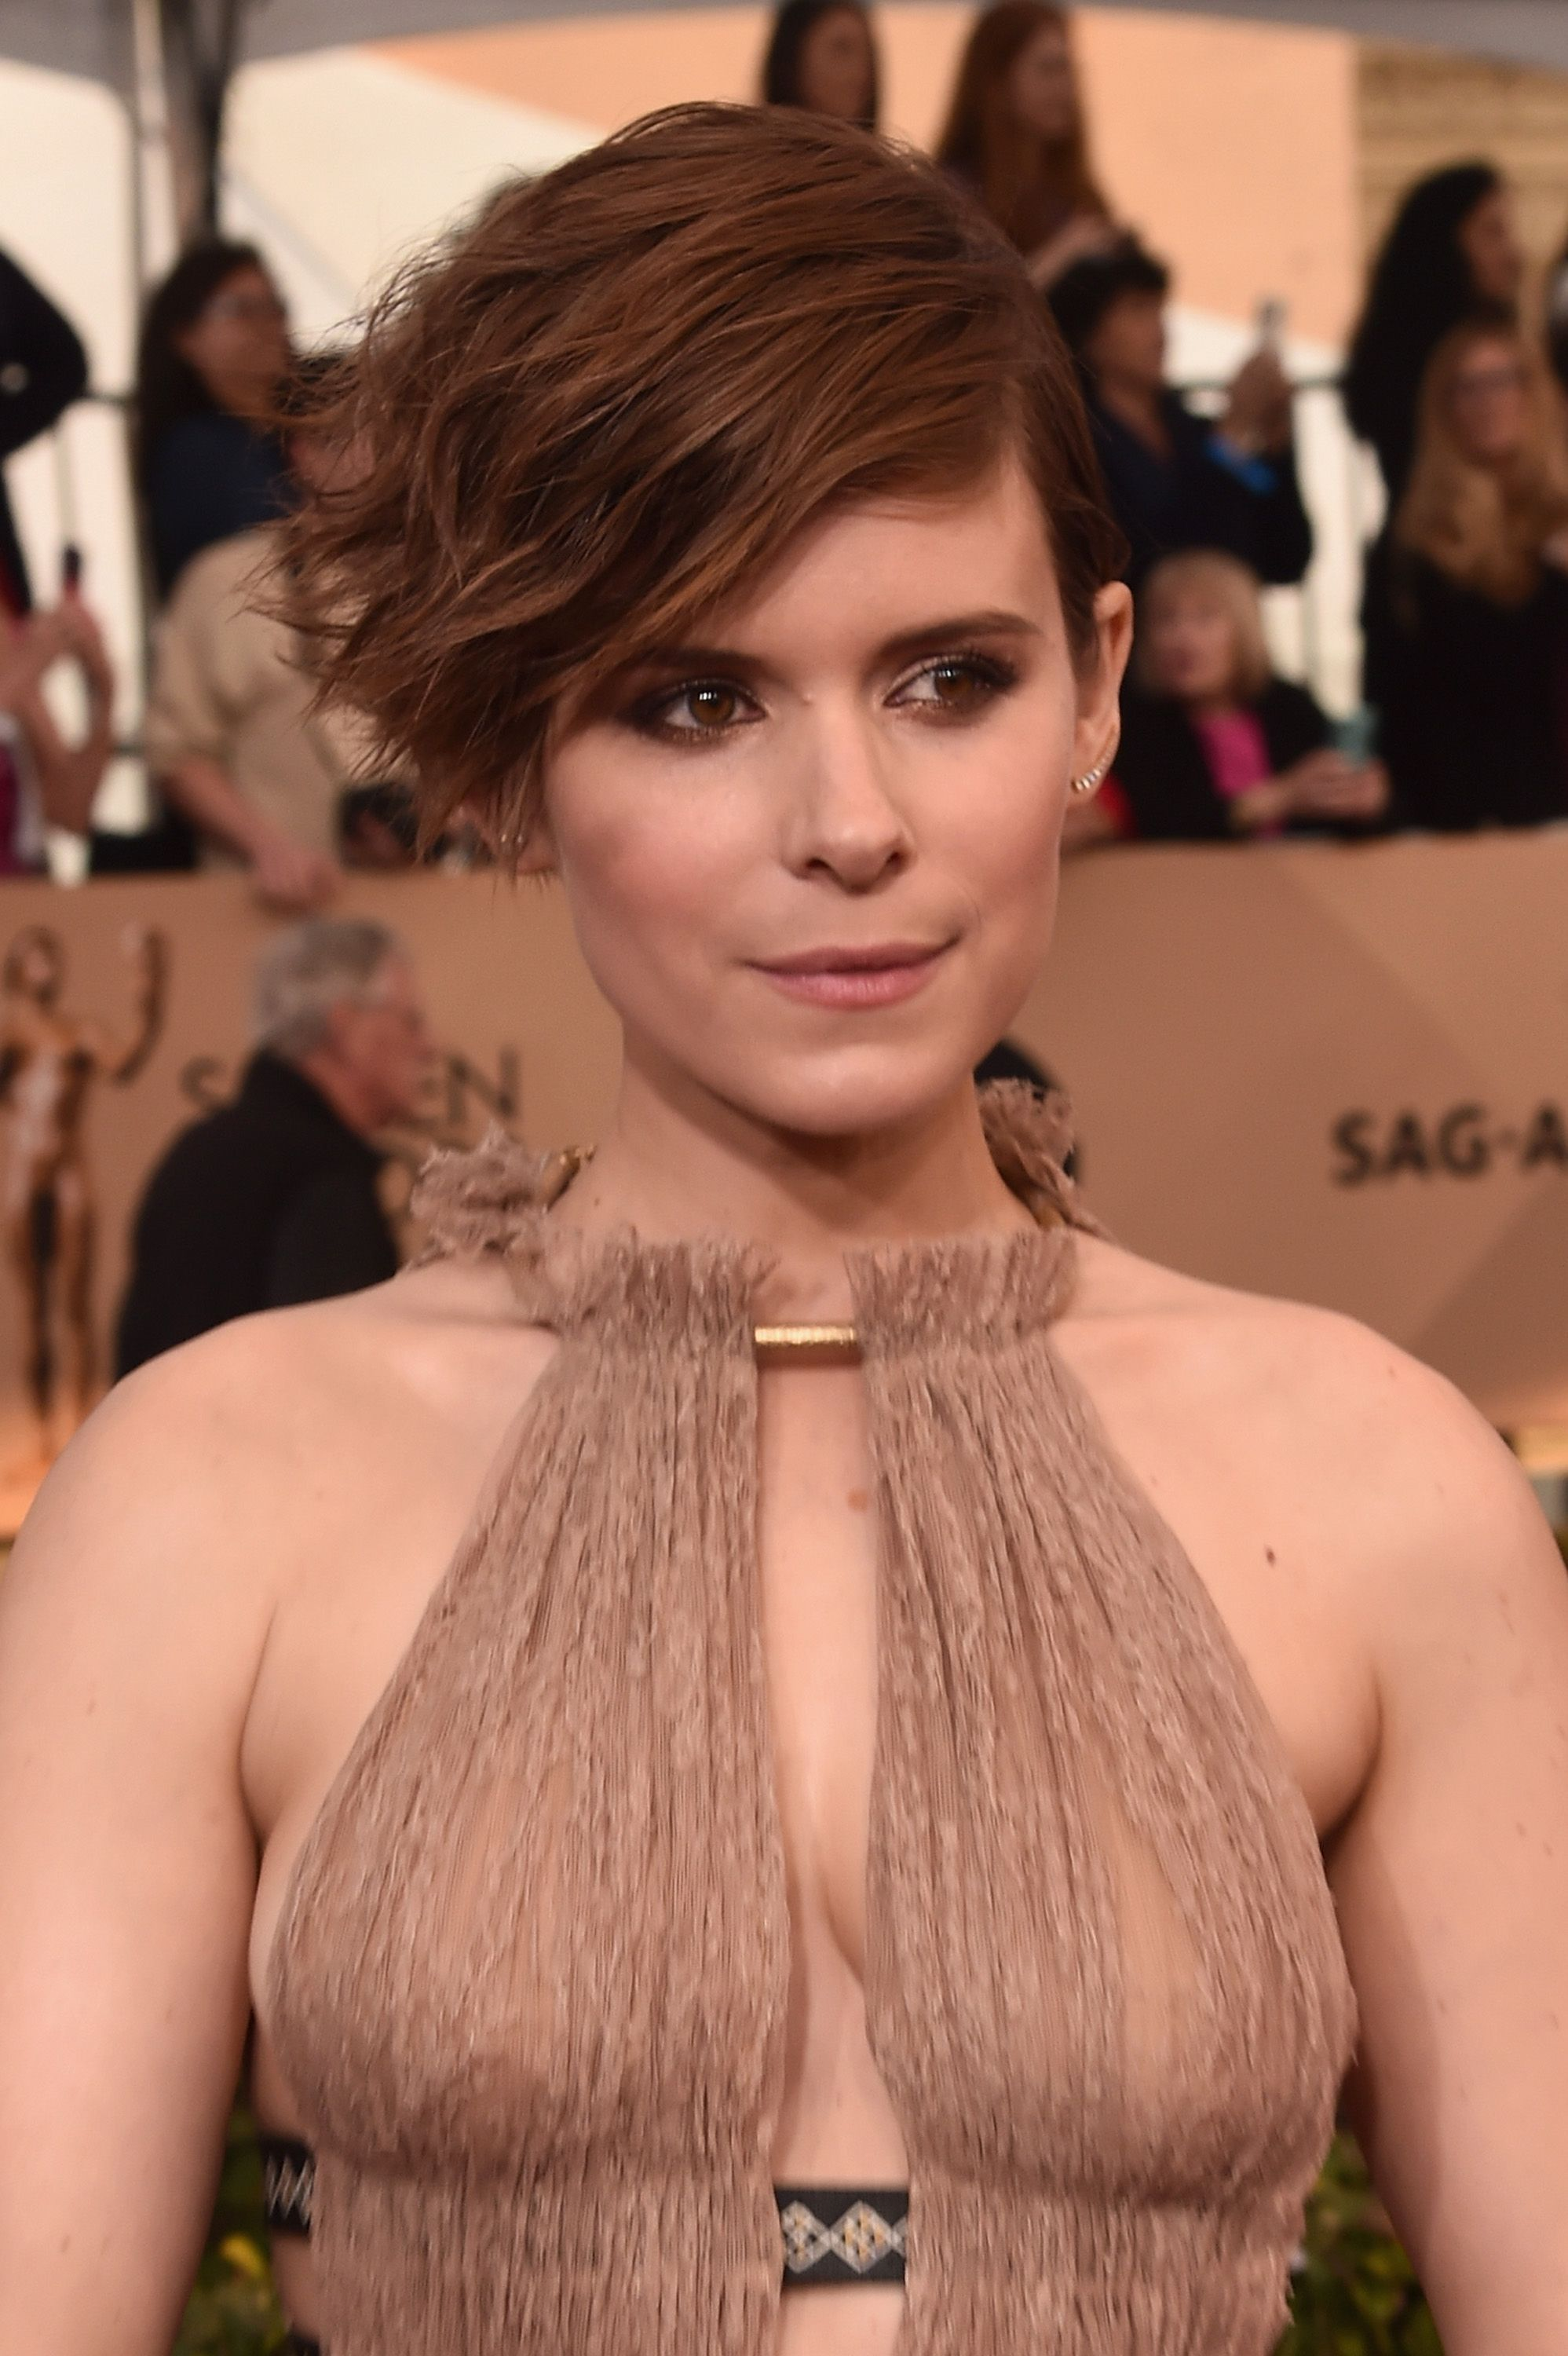 Kate Mara Sexy Photos